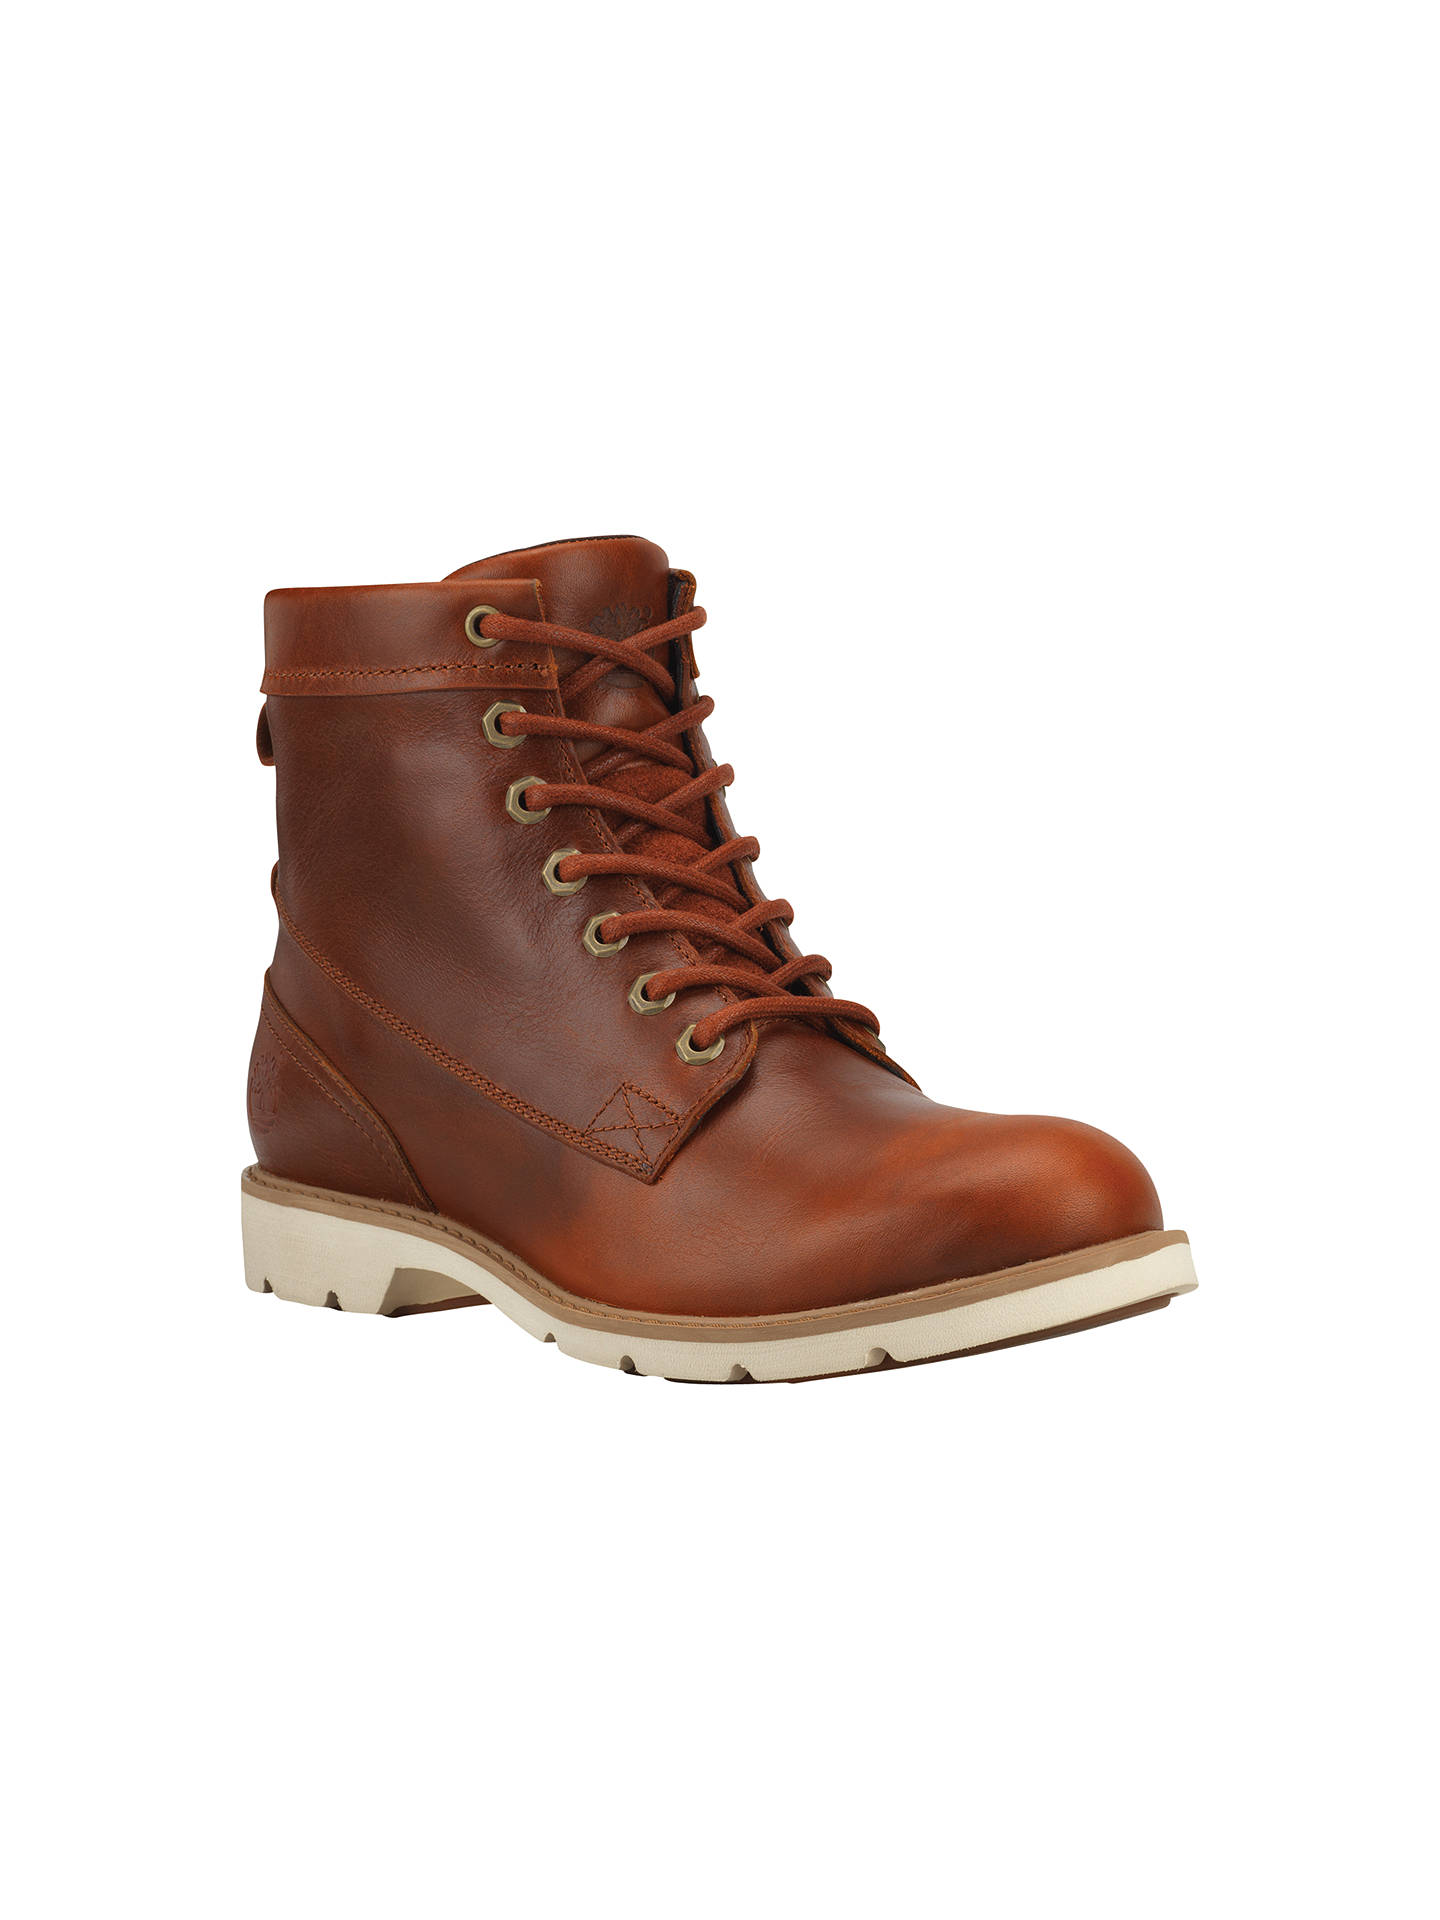 ef37152c1a2 Buy Timberland Women s Bramhall 6 Inch Lace-Up Waterproof Boots